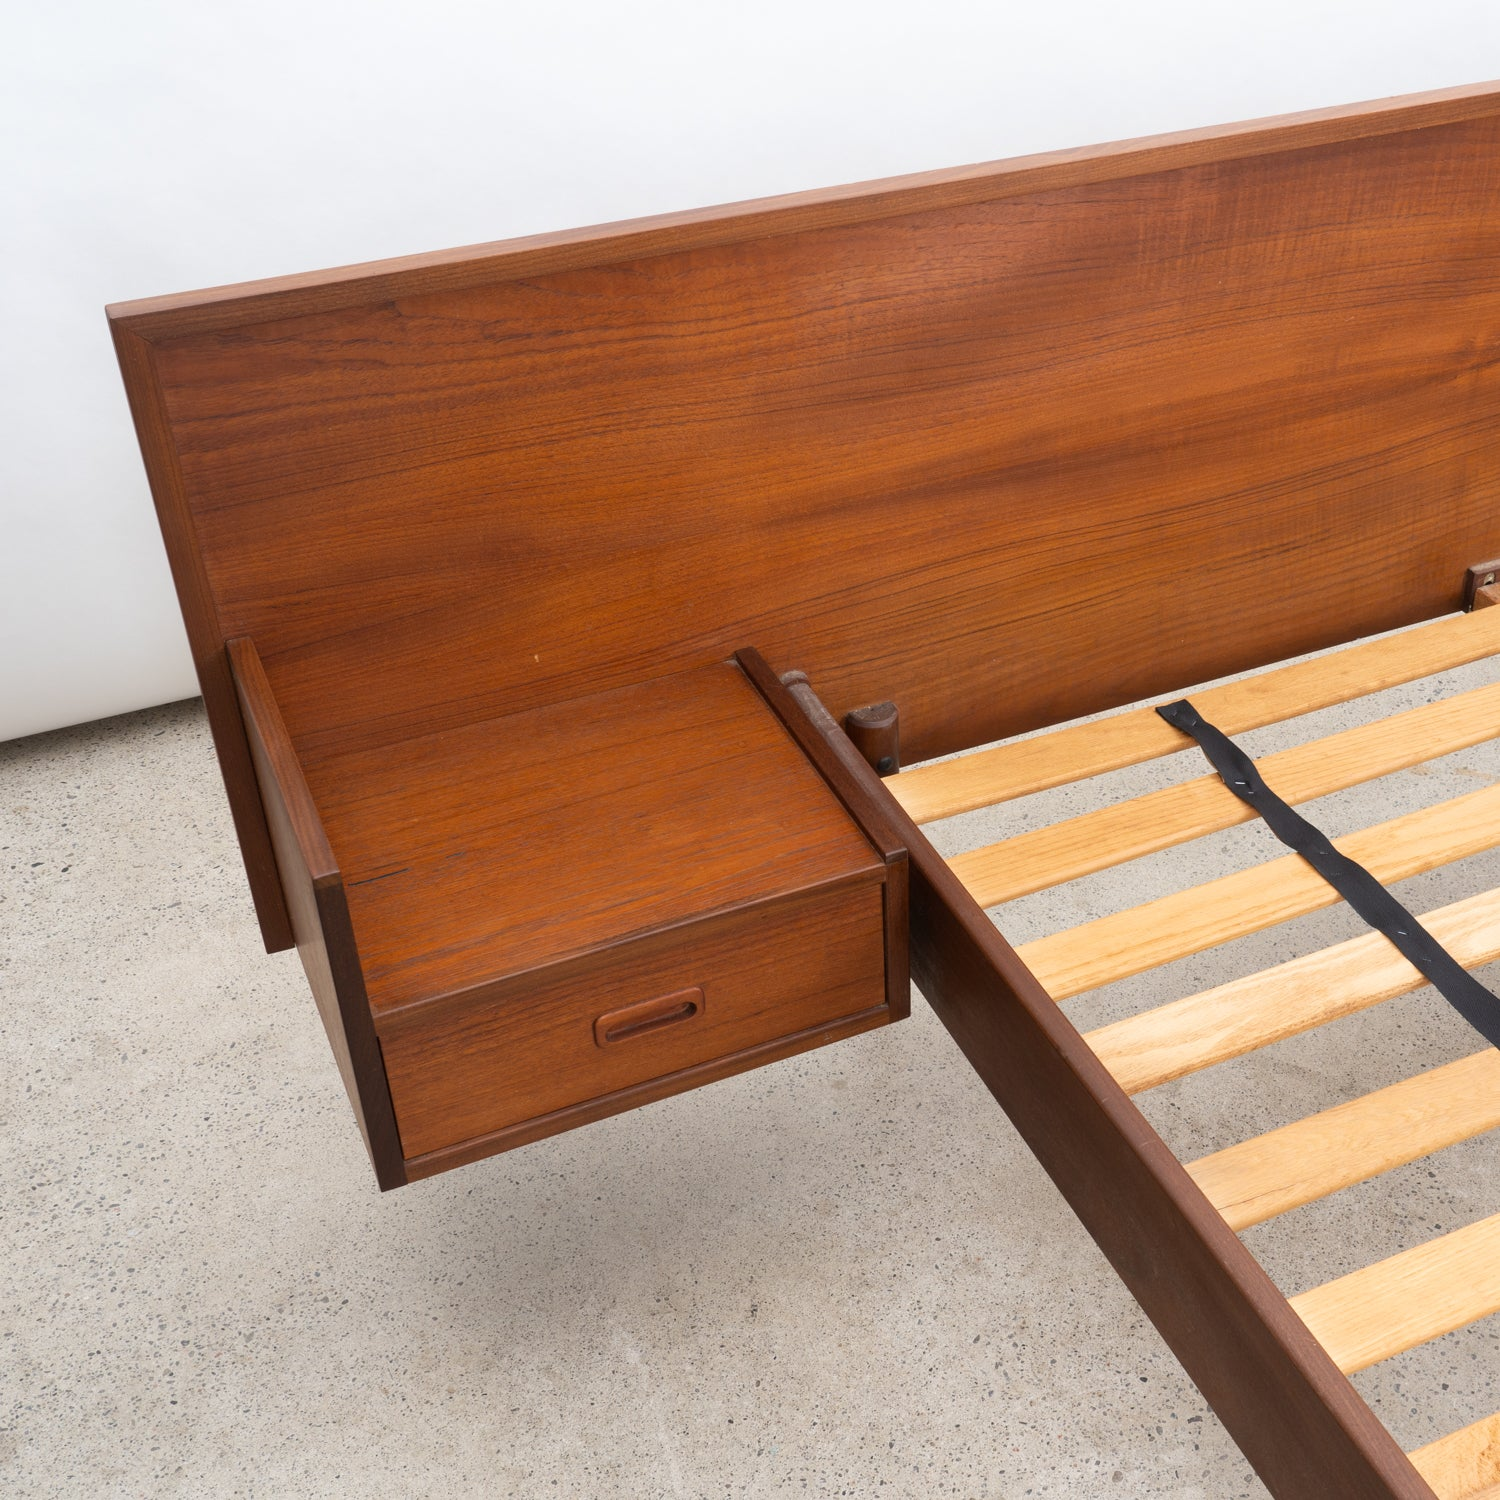 Teak Queen Bed Frame with Night Tables